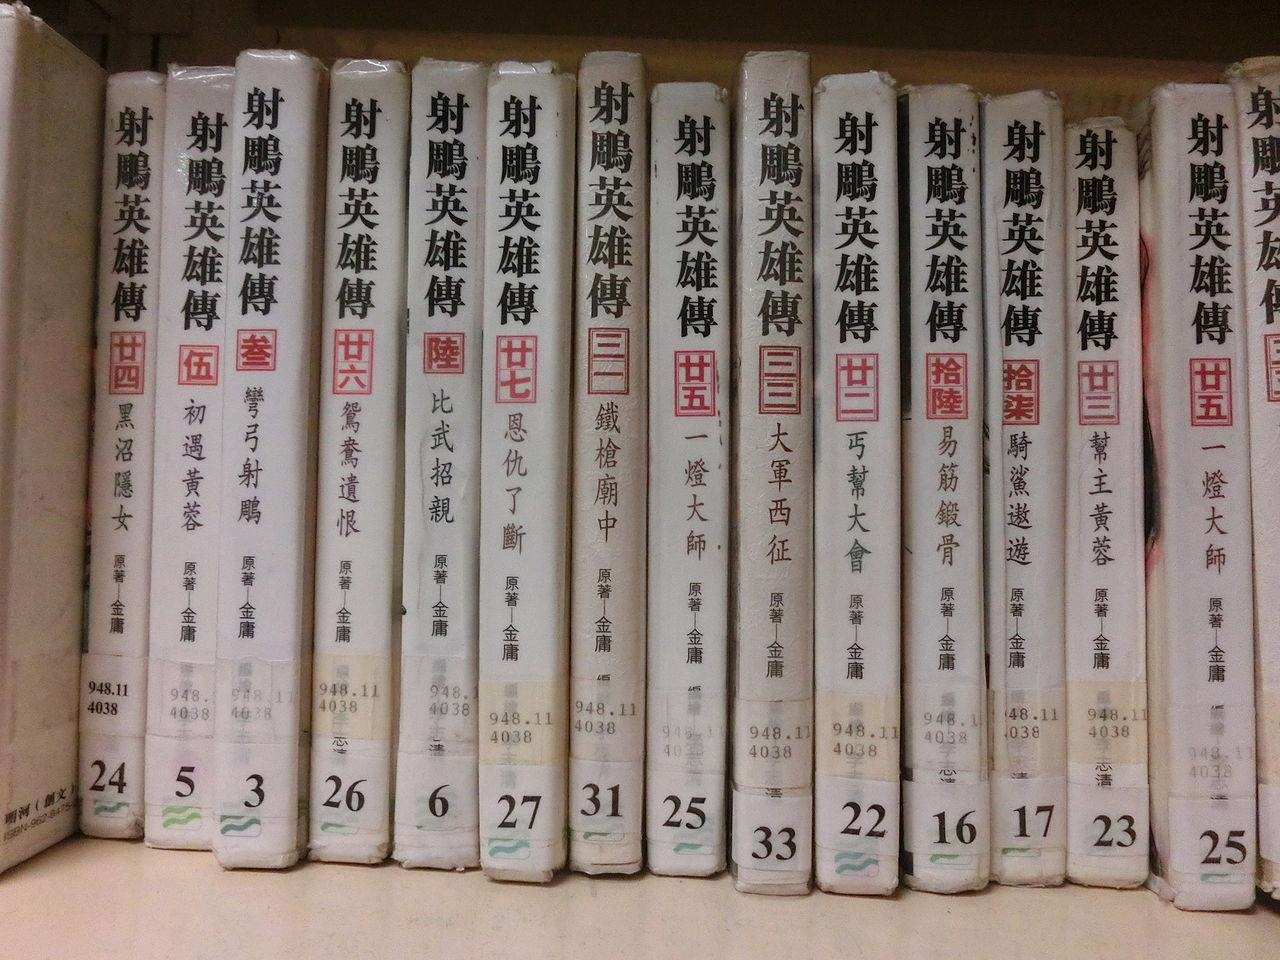 The Legend of the Condor Heroes, 武侠小説, 小說, Wuxia, Novel, Biography of the Bearded Warrior, Chinese literature, Short story, Web fiction, Book, 武俠 小說, book, product, material, font